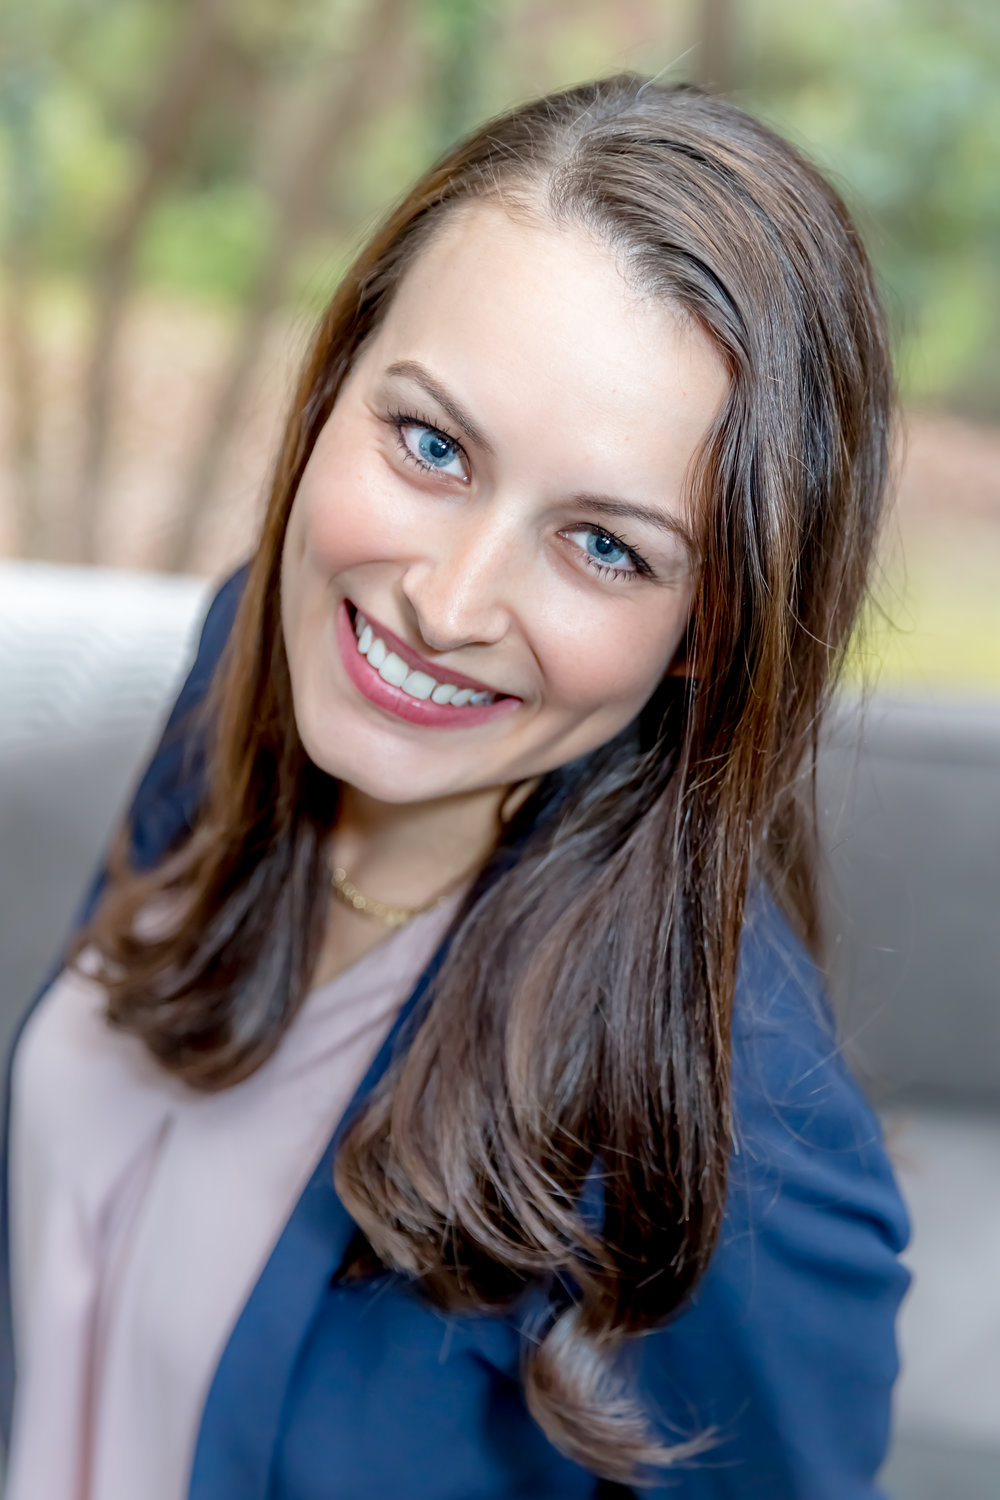 Anne Streett, LMFT Associate - Specializing in new parents, premarital, and couples therapy